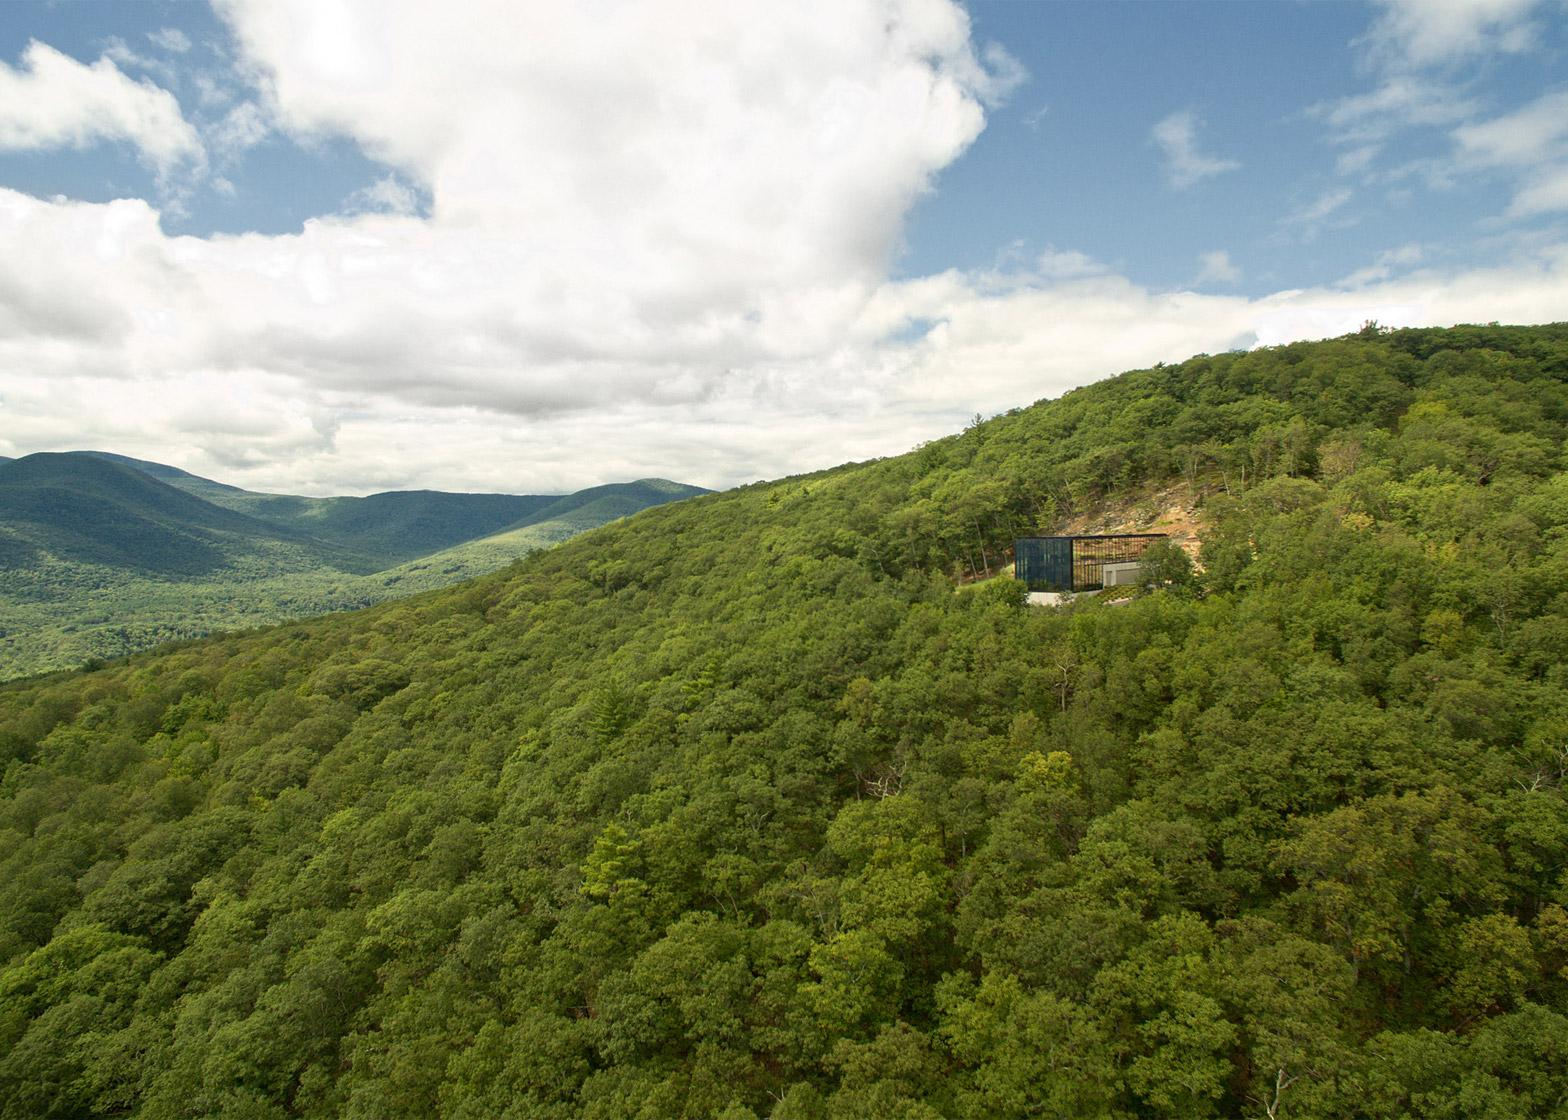 The Mirrored Hideaway in the Catskill Mountains 4